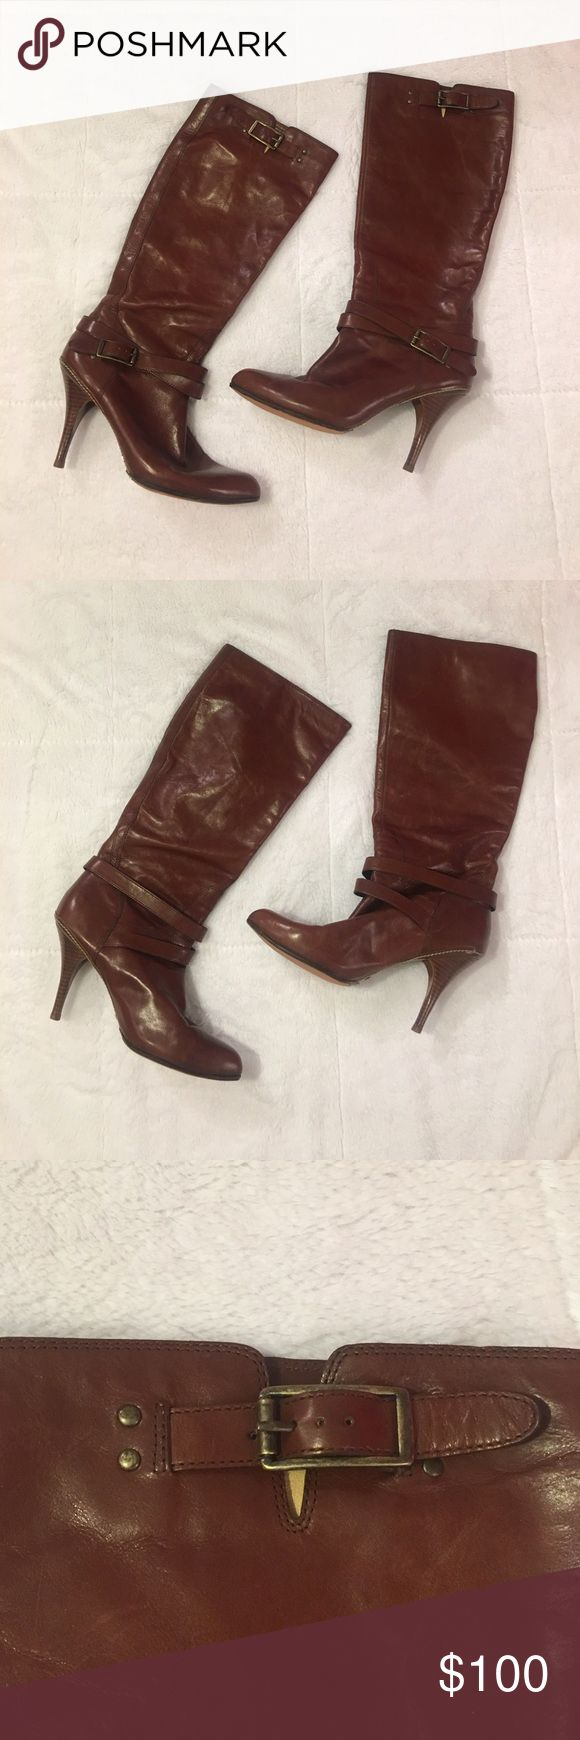 Cole Haan Nike Air Brown Boots 4 Inch Heel Size 9B Cole Haan Nike Air Brown Boots. 4 Inch Heel. Women's Size 9B. Lightly Worn (Twice). Like New Condition. Cole Haan Shoes Heeled Boots